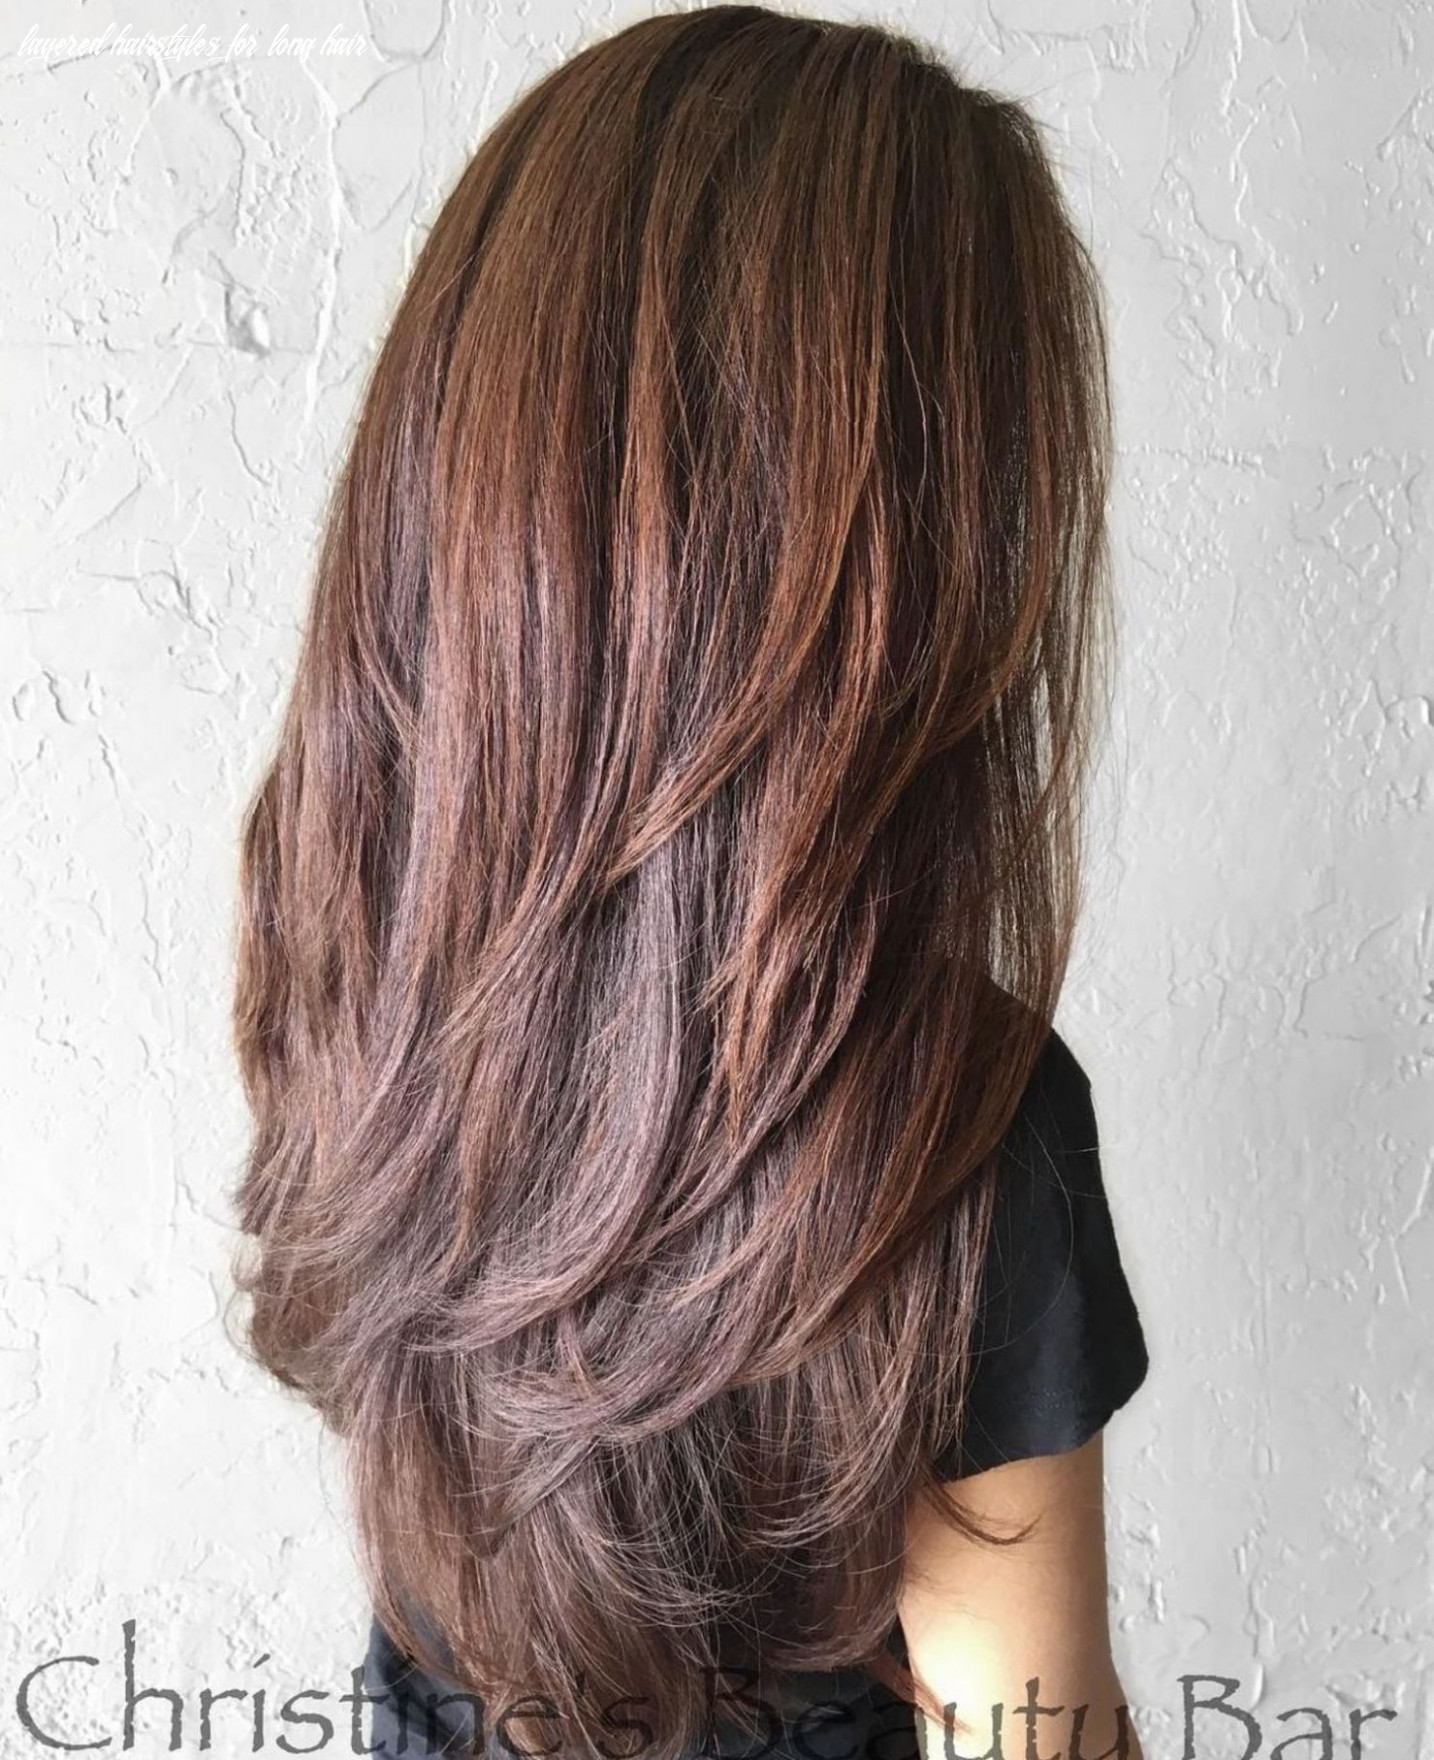 Pin on hair cut/color layered hairstyles for long hair